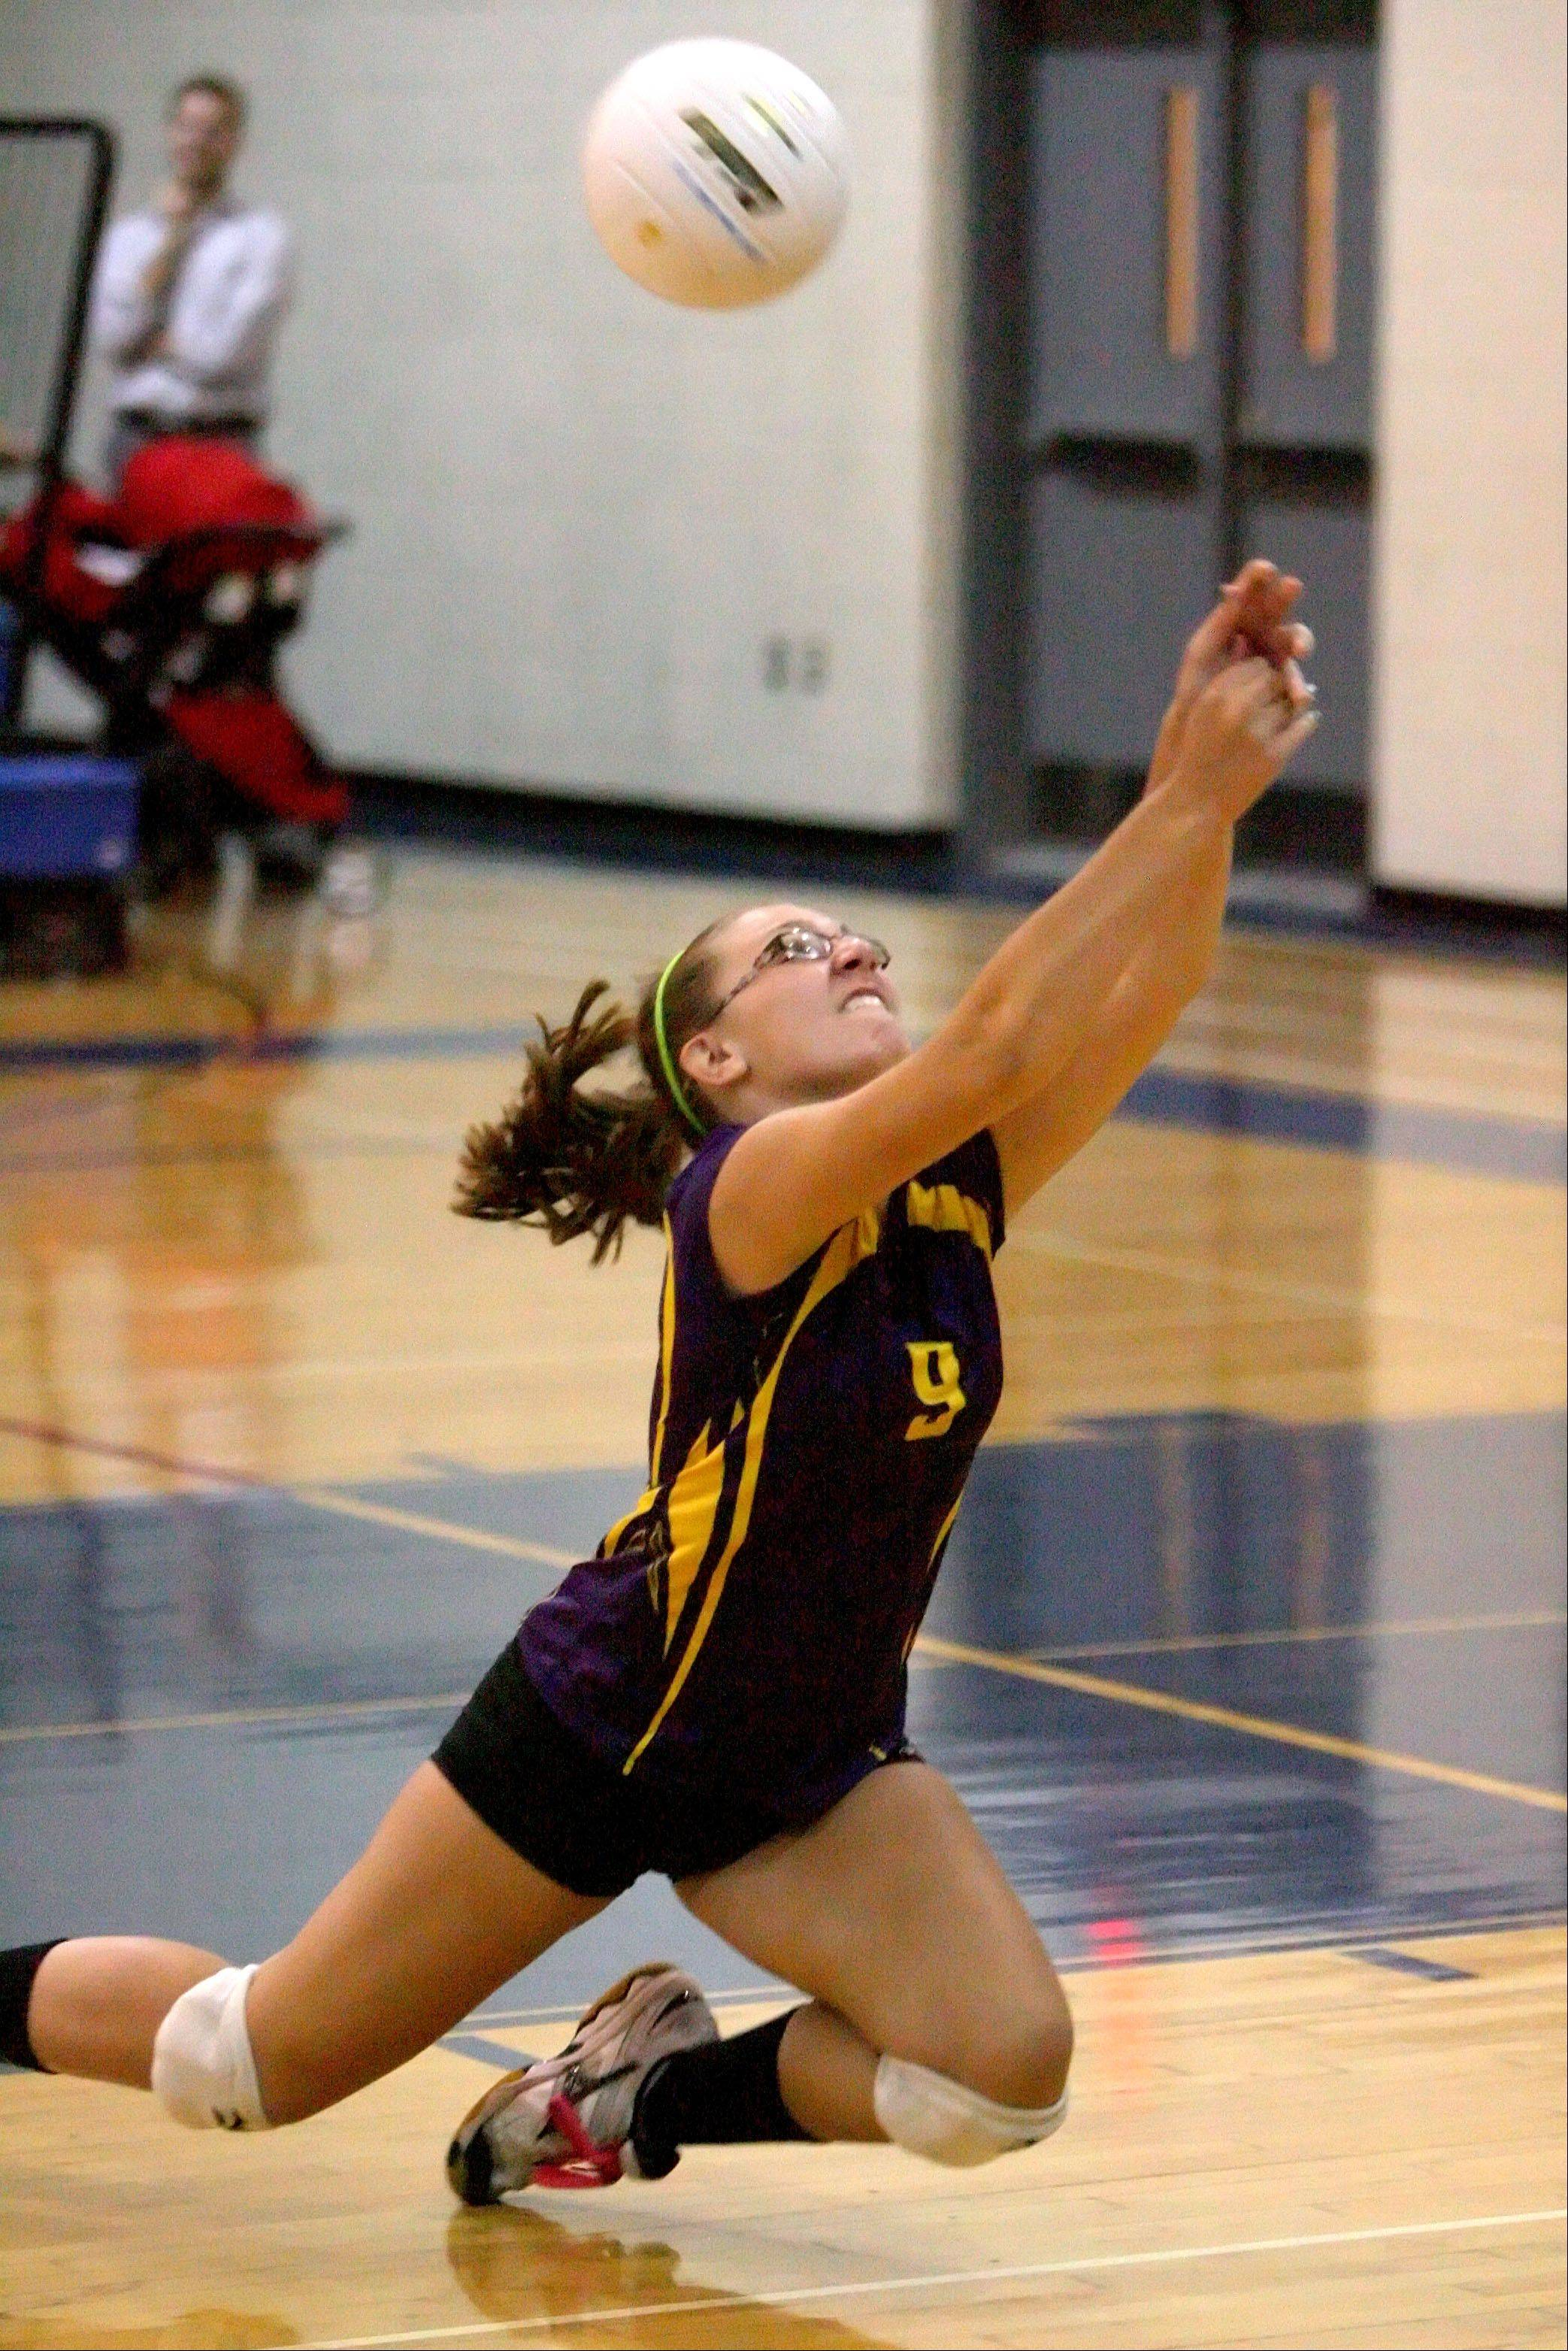 Wauconda's Steph Schaer makes a diving attempt at the ball during their game Tuesday night at Lakes High School.